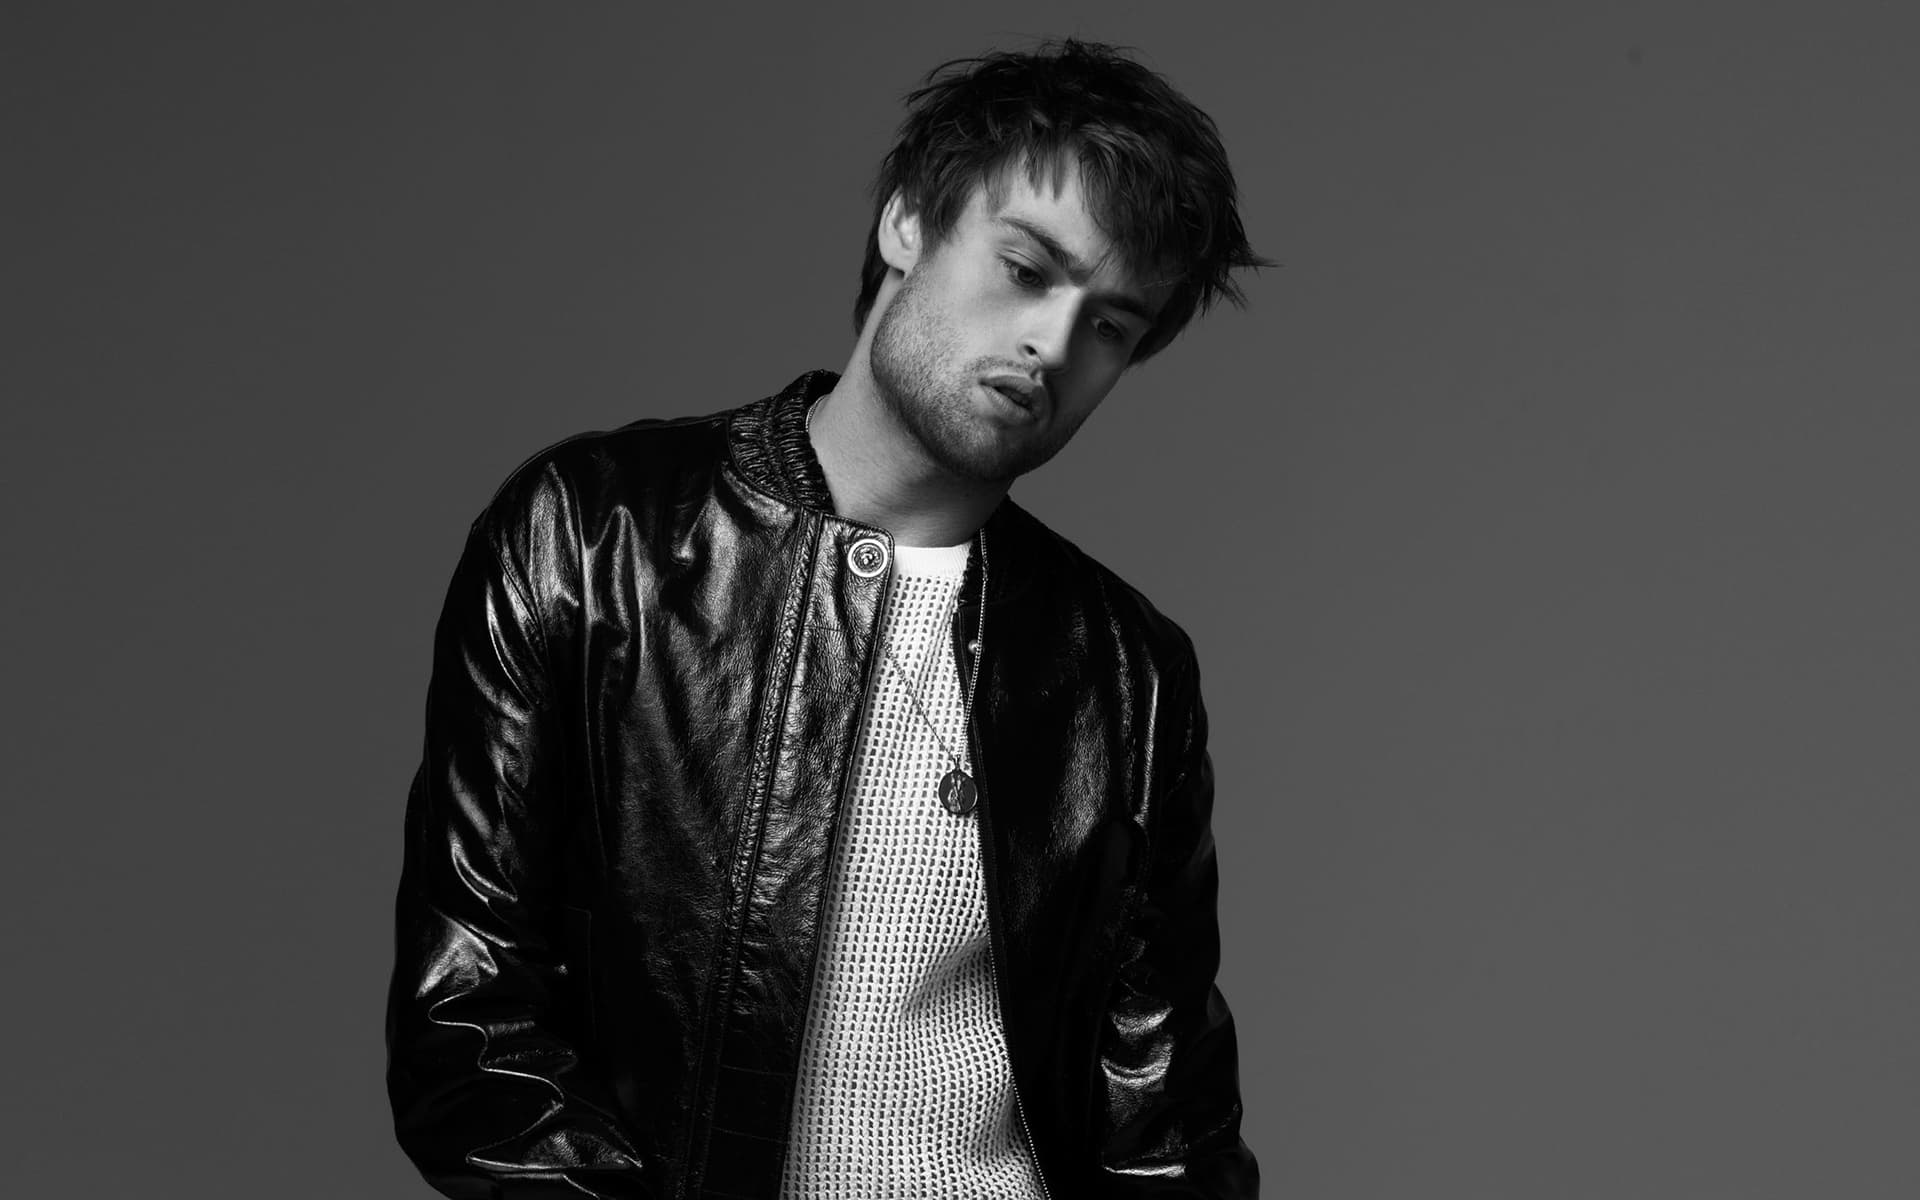 monochrome douglas booth desktop wallpaper 56303